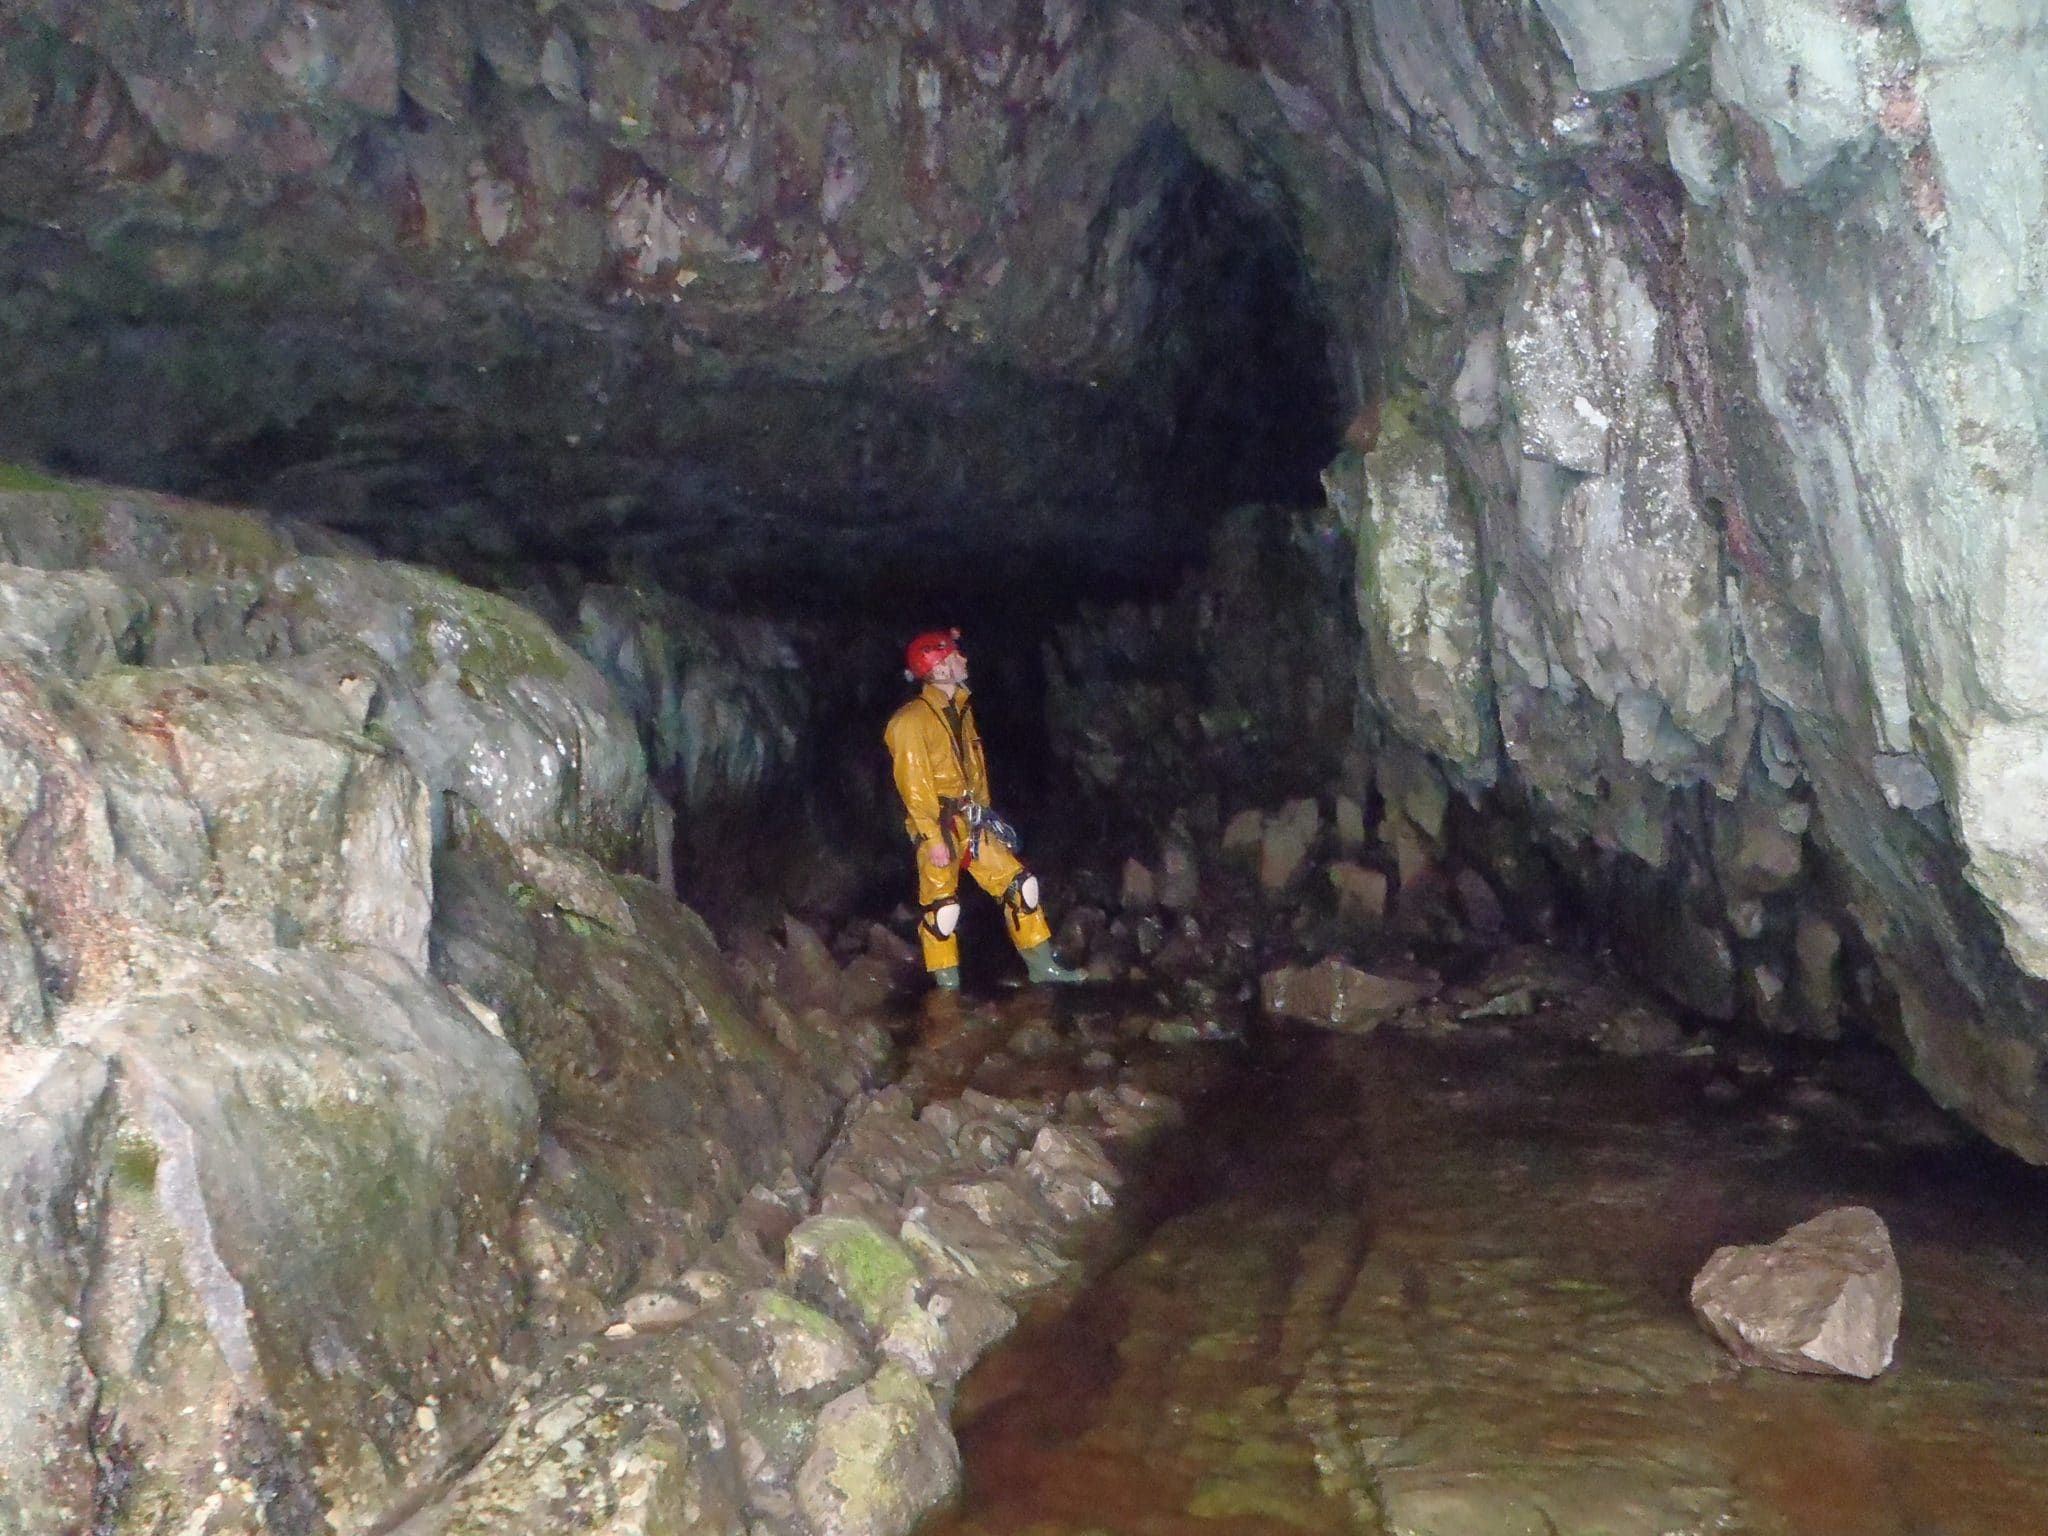 Caving in the Peak District